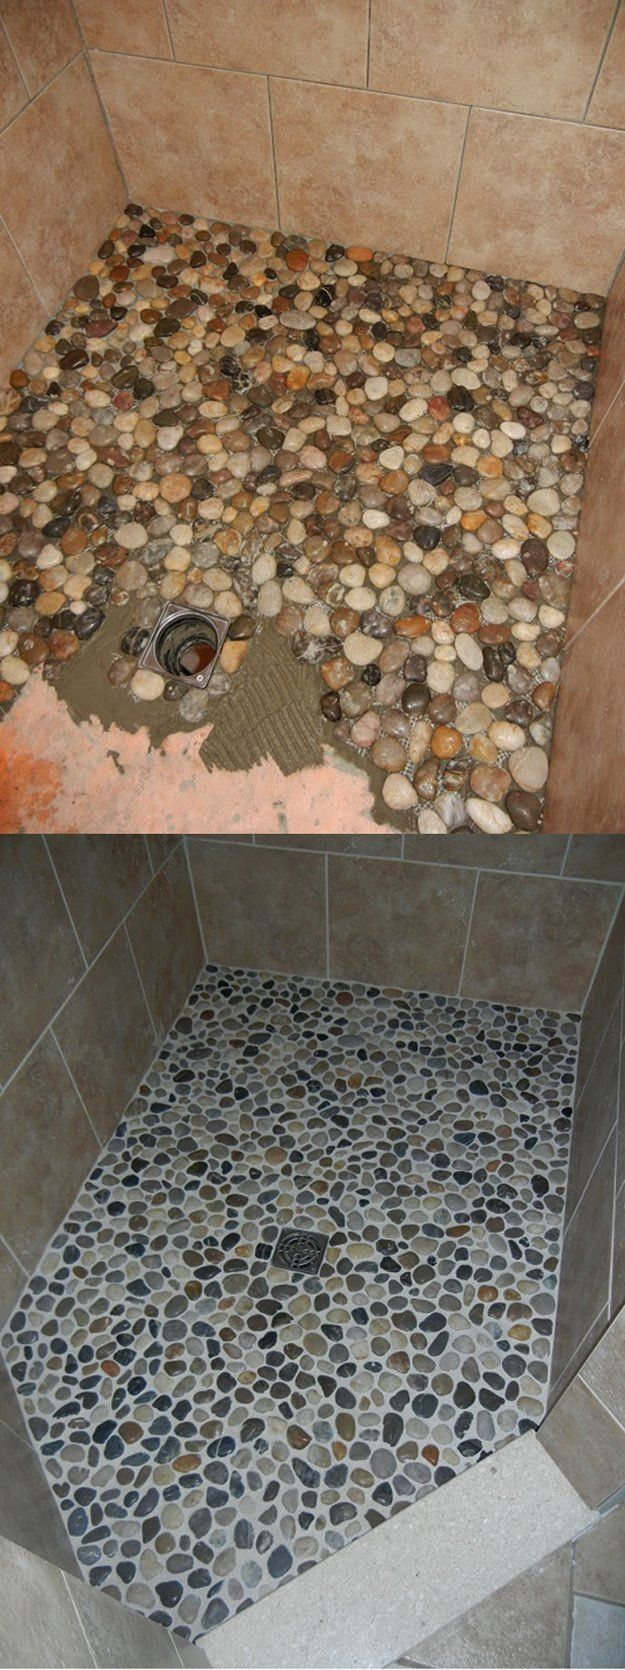 your shower floor an upgrade from river rock and grout DIY bathroom makeover  DIY and DIY decorationsbathroomGive your shower floor an upgrade from river rock and grout D...